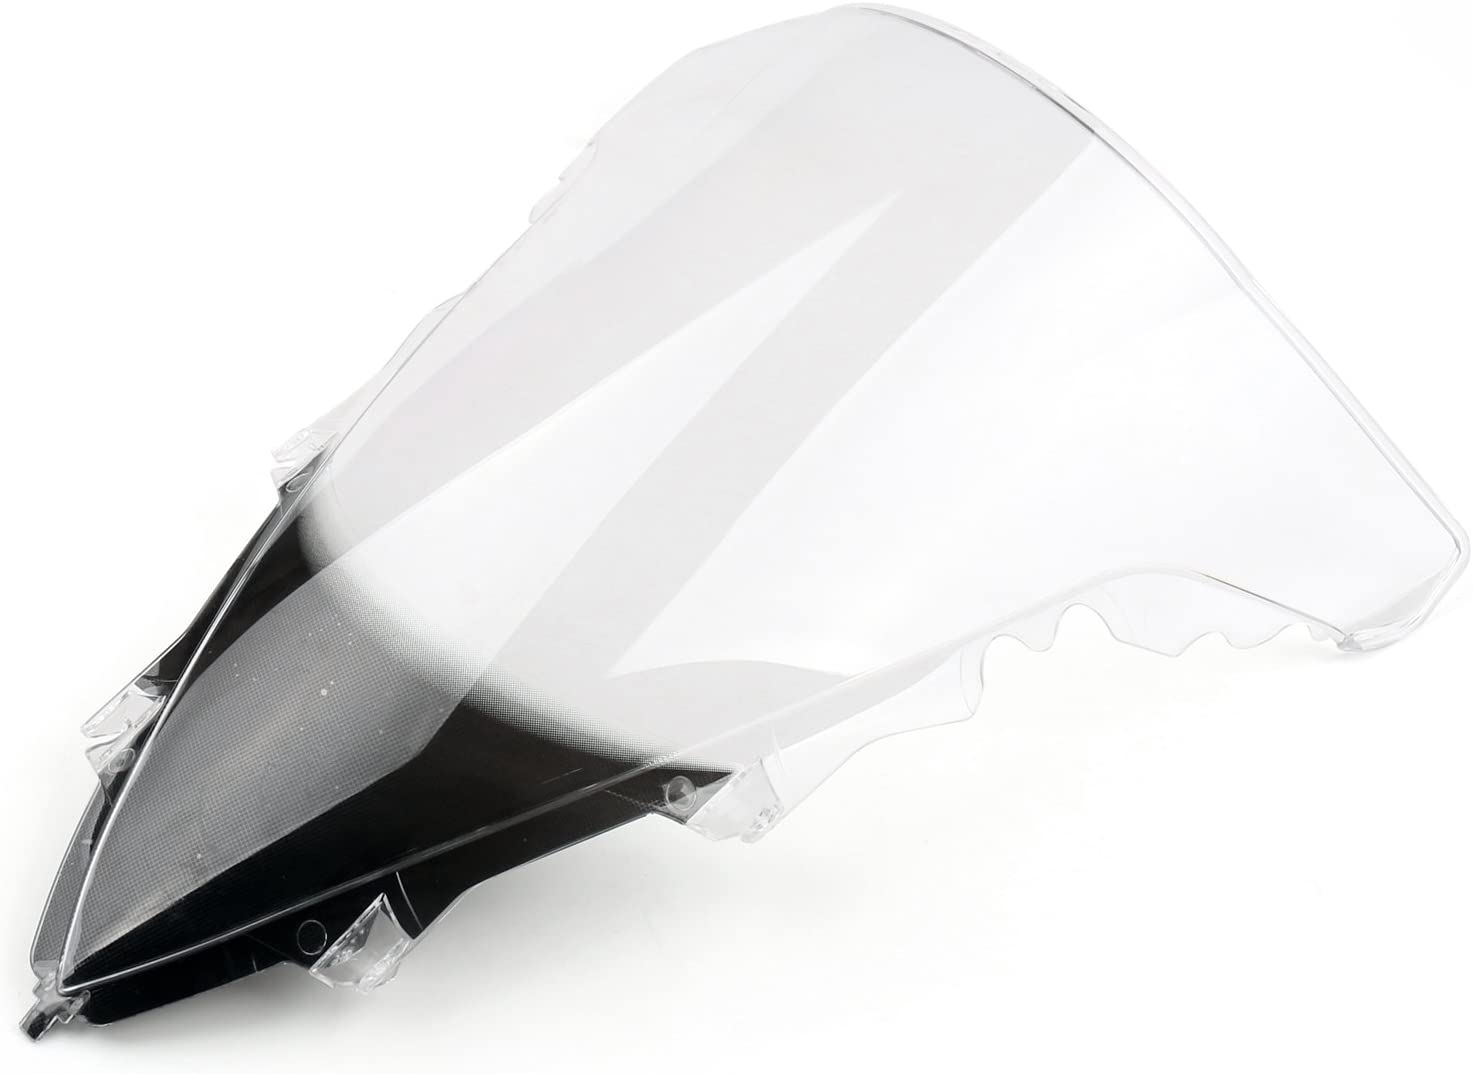 Areyourshop Windshield Windscreen Double Bubble For YZF R1 1998-1999 WI